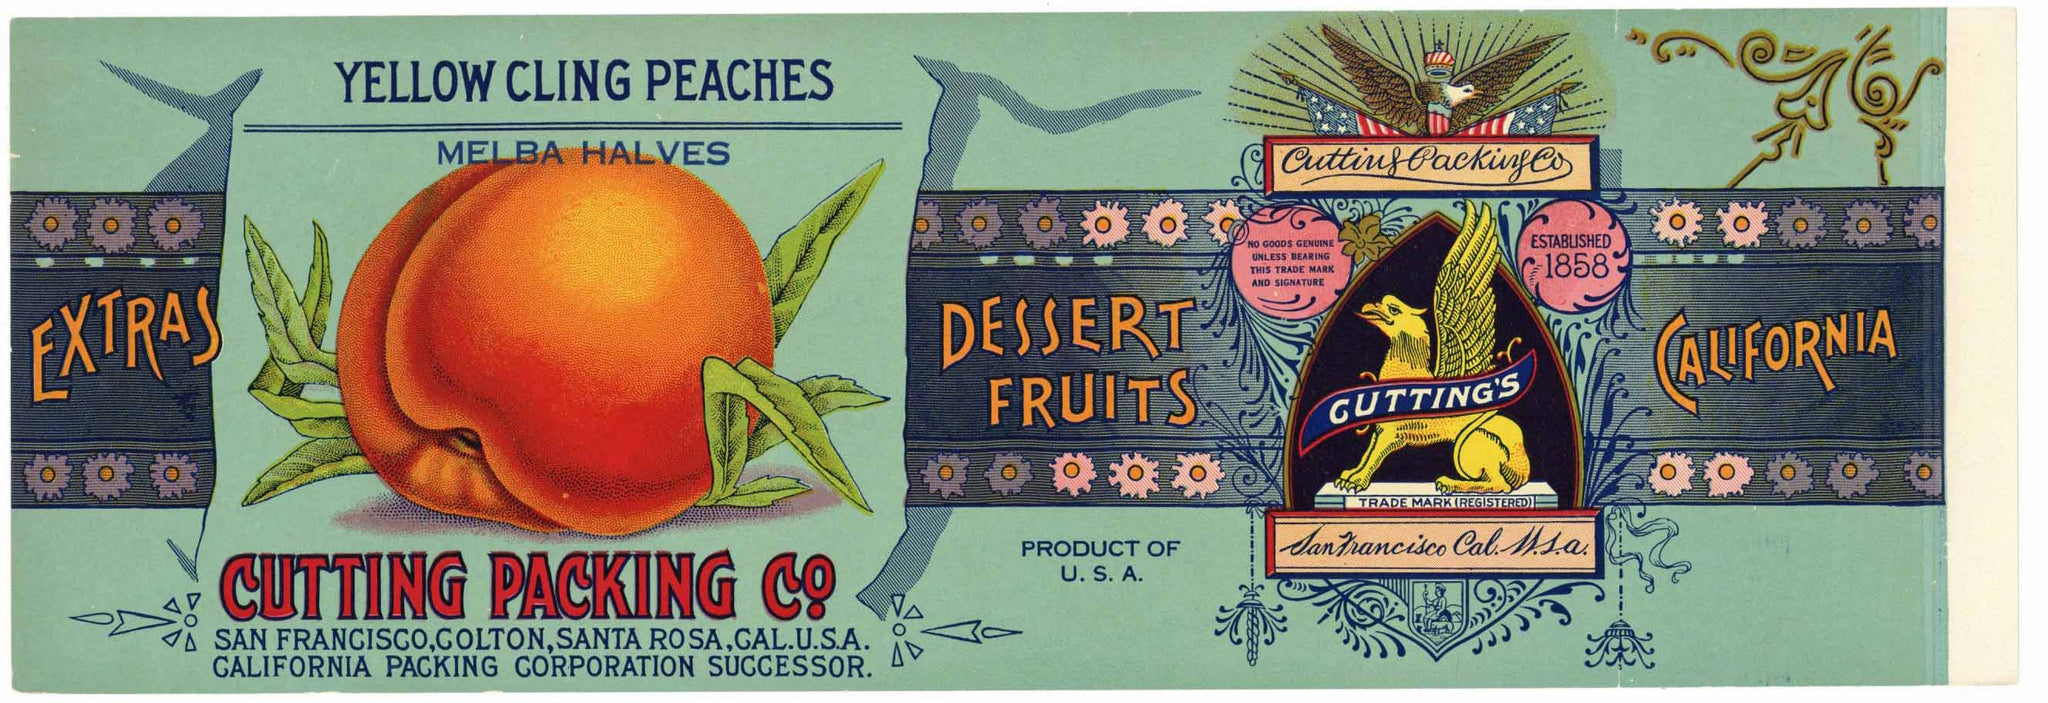 Cutting Packing Co Brand Vintage  Peach Can Label